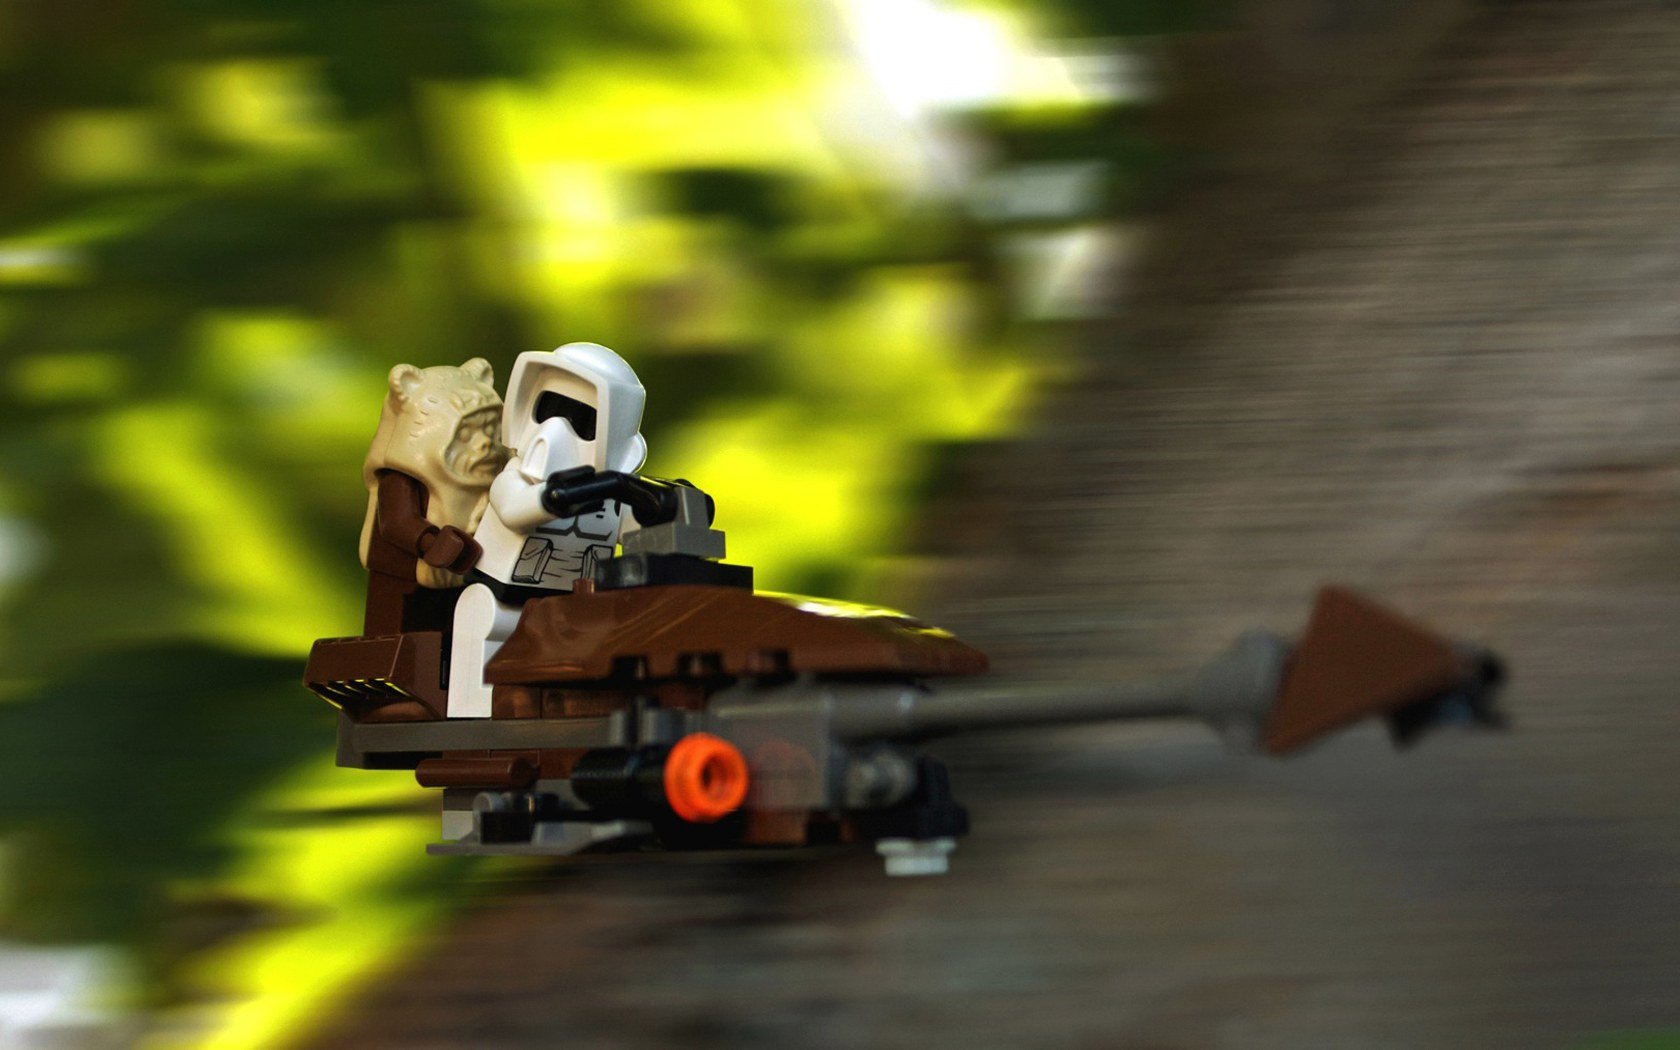 LEGO Wallpapers Of Funny Lego Star War S And Toys 1680x1050